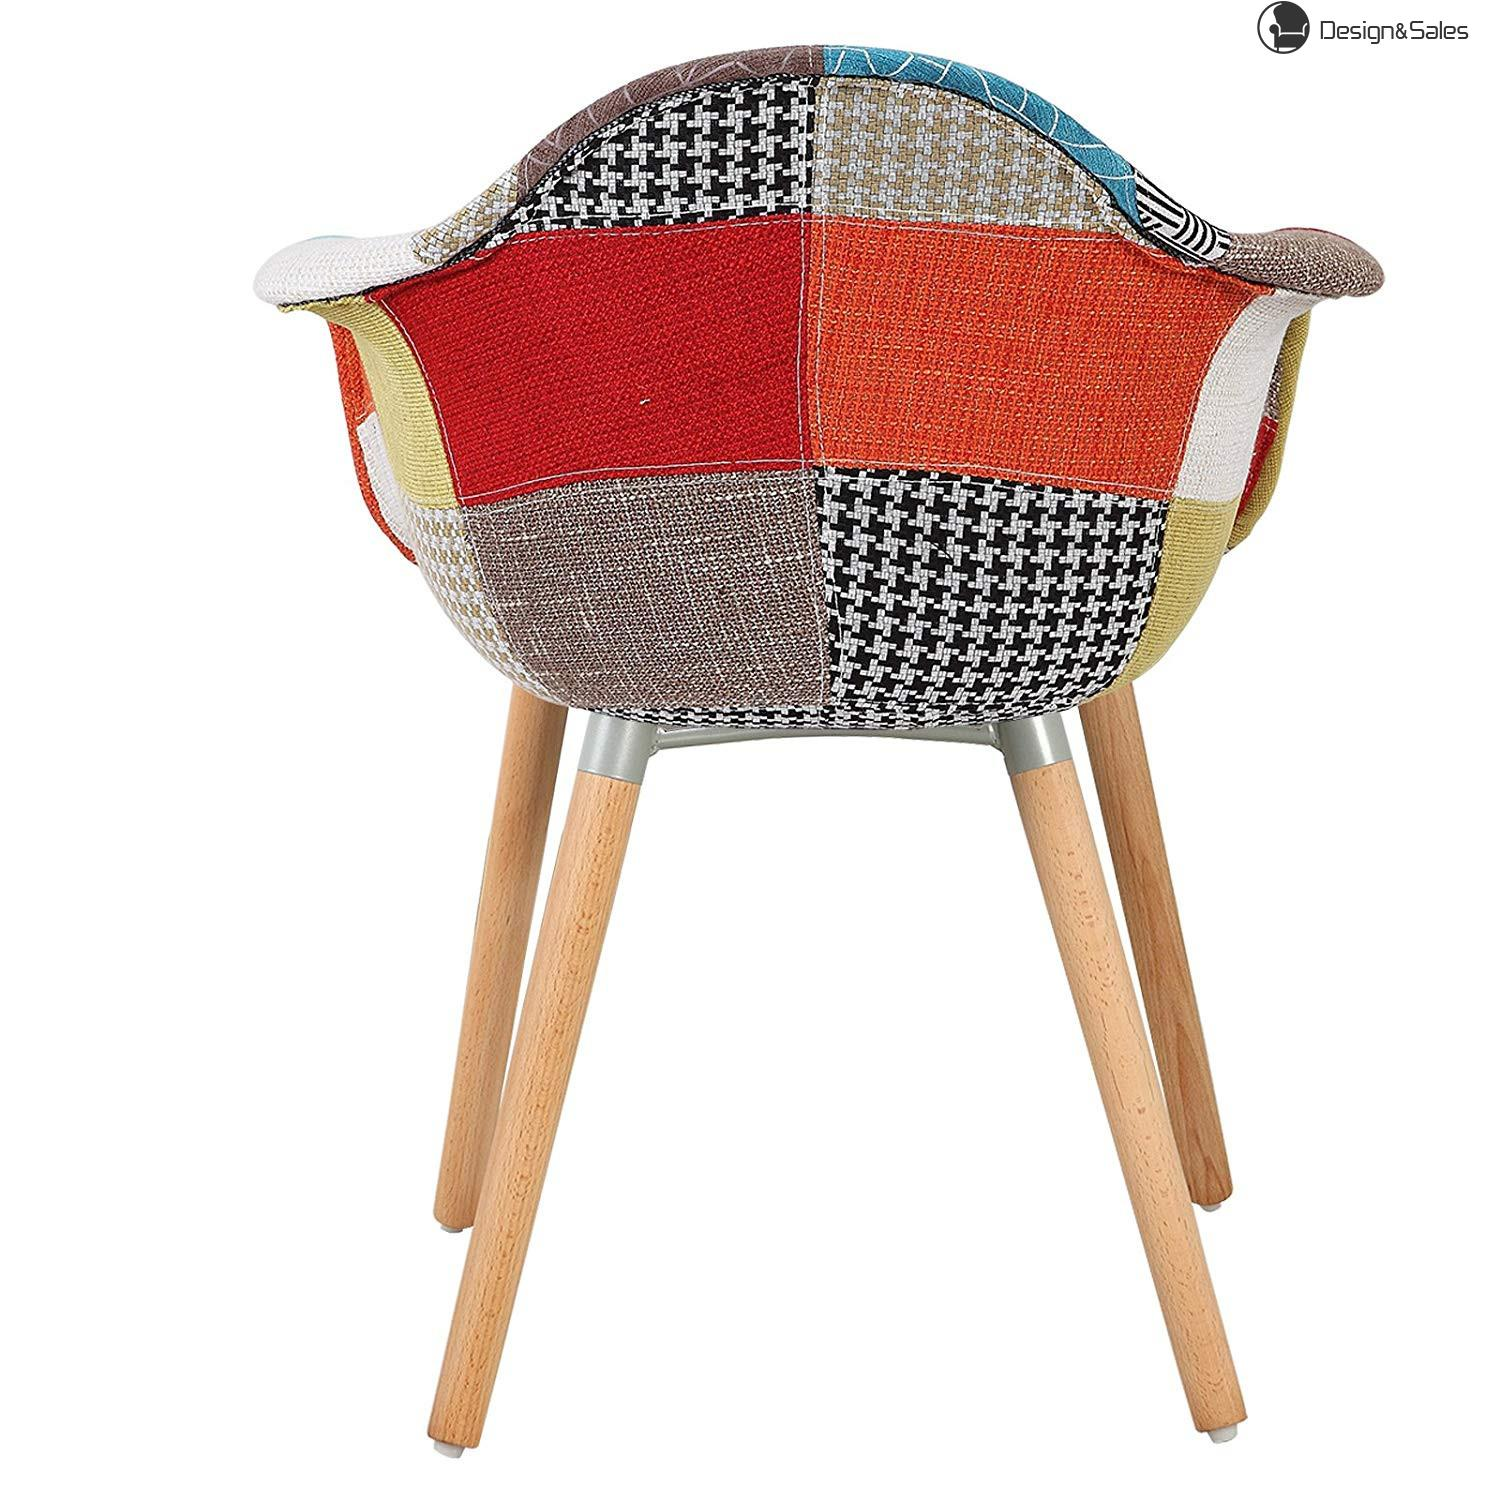 Kitchen Stools Colourful Wood Breakfast Linen Dining Chairs with High Backrests and Armrests luxury Padded